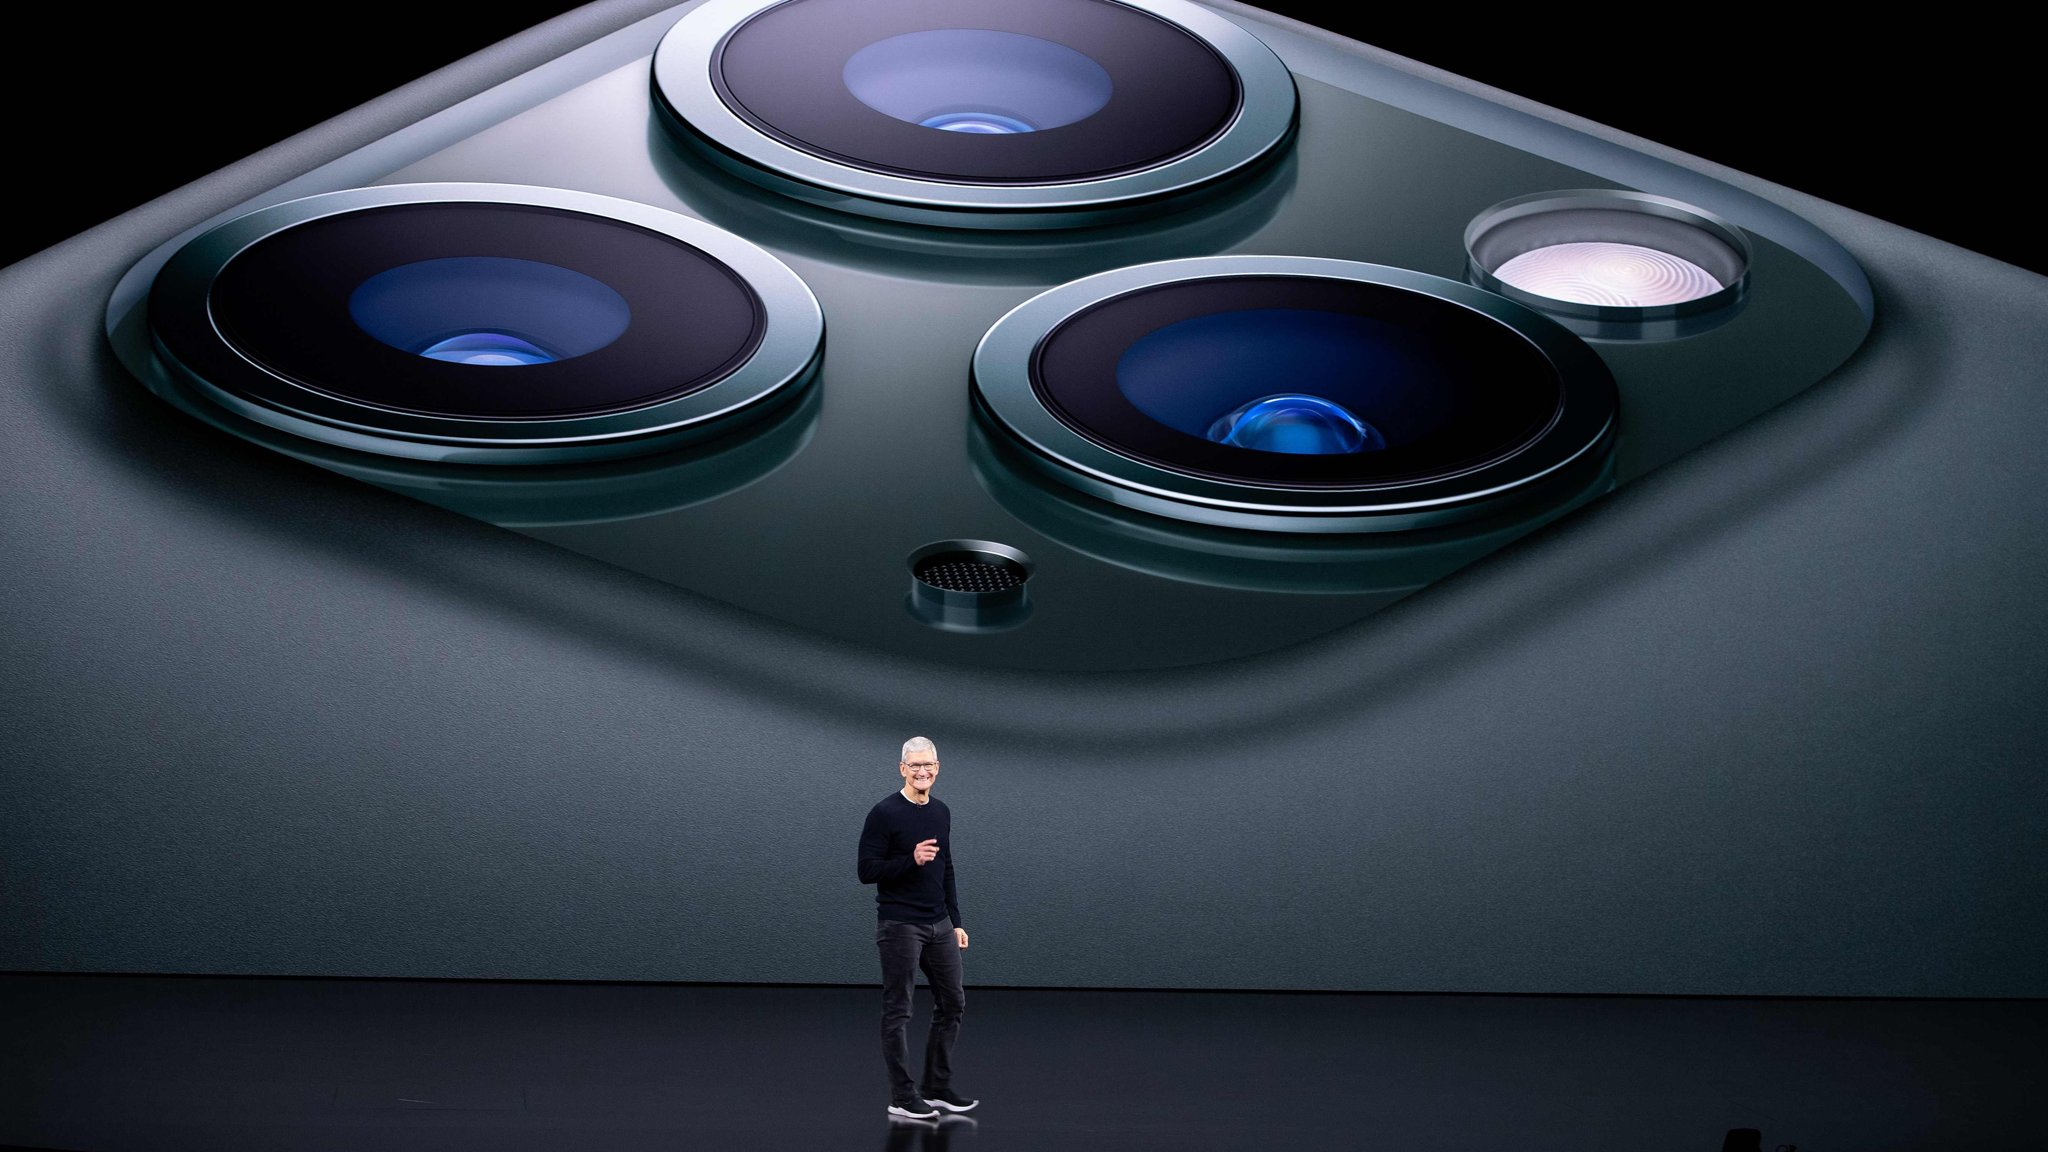 Apple product launch